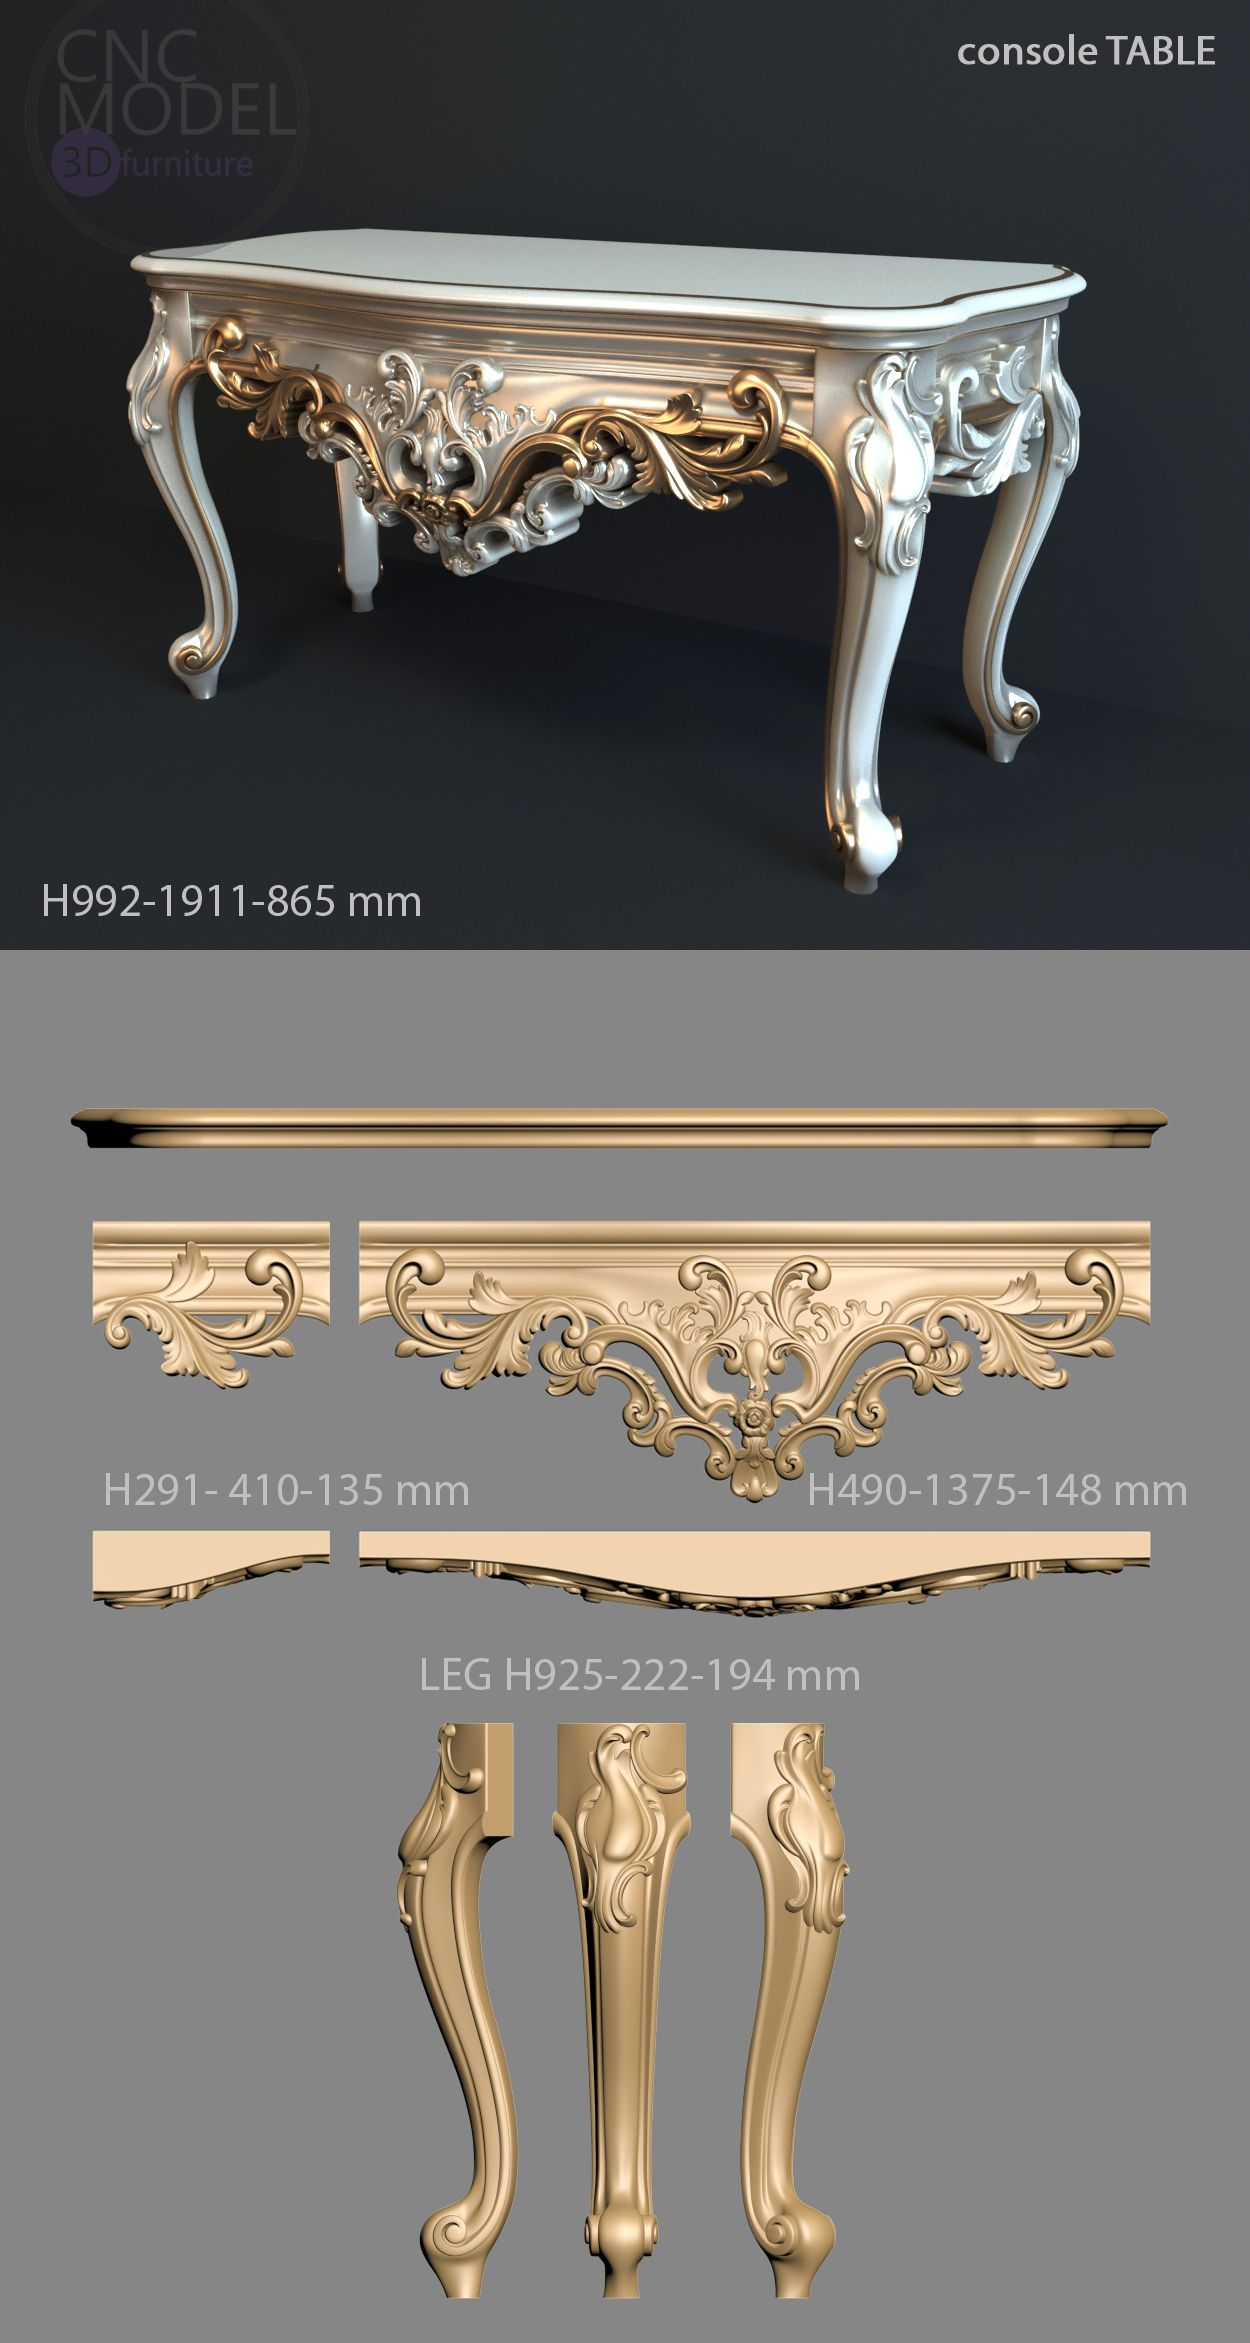 Luxury Showcase For Living Room Royal Art Deco: A1302 Console TABLE Cnc-model.com 3D Model For Cnc Router